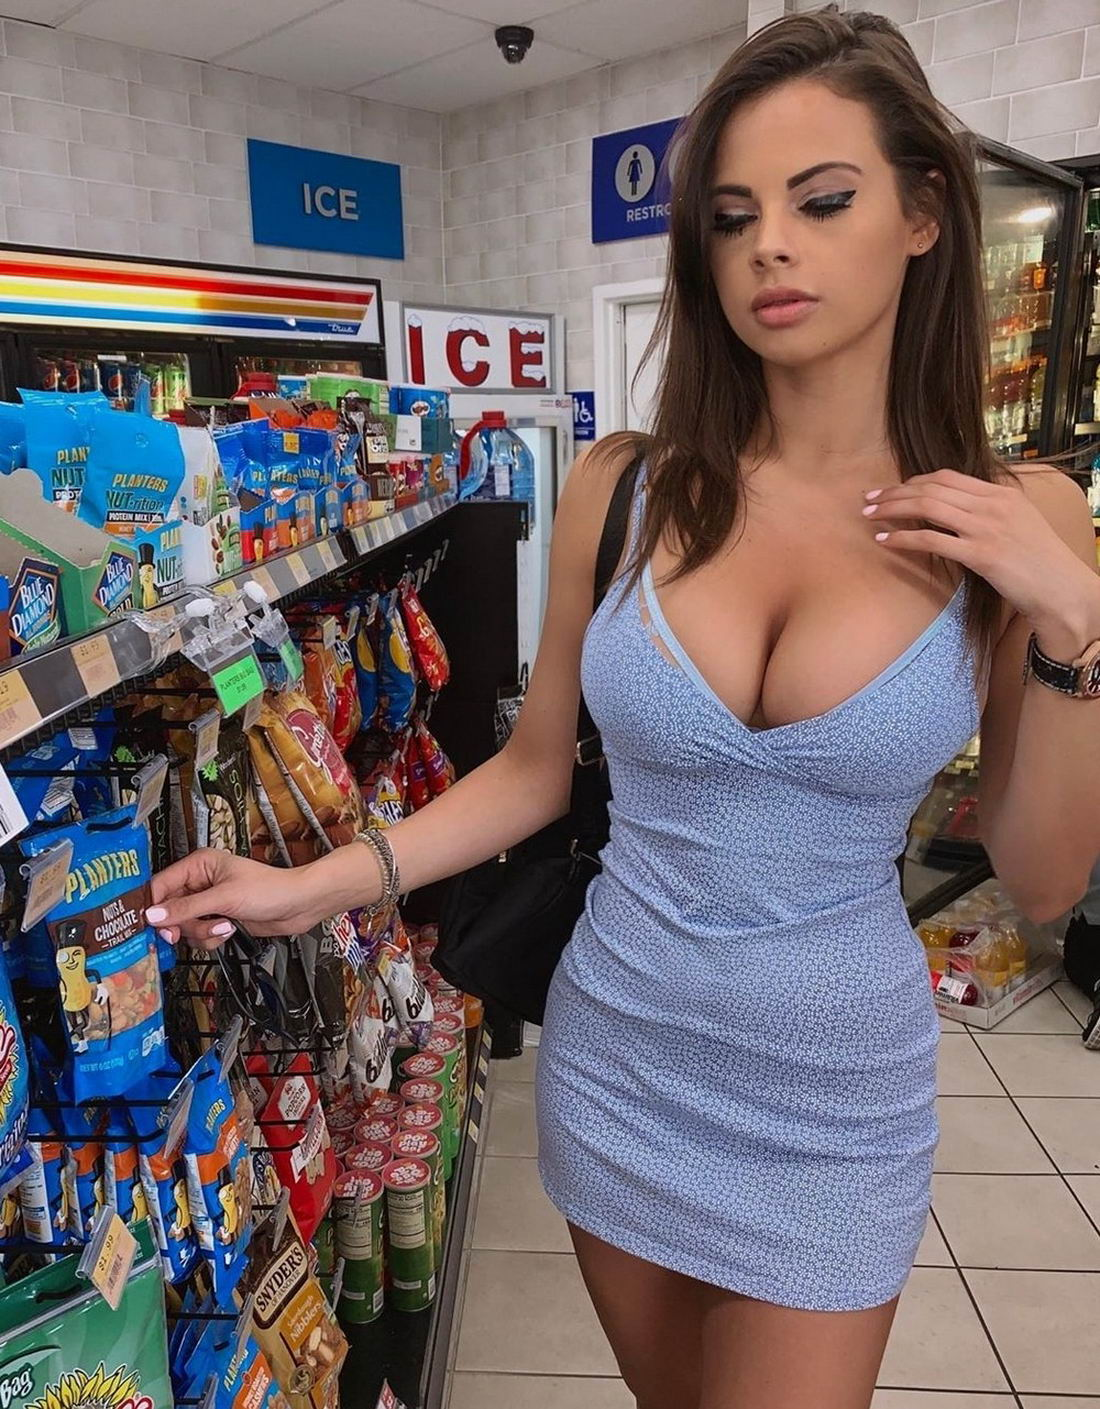 Pretty Hot Girls In Tight Dress (46 Photos)